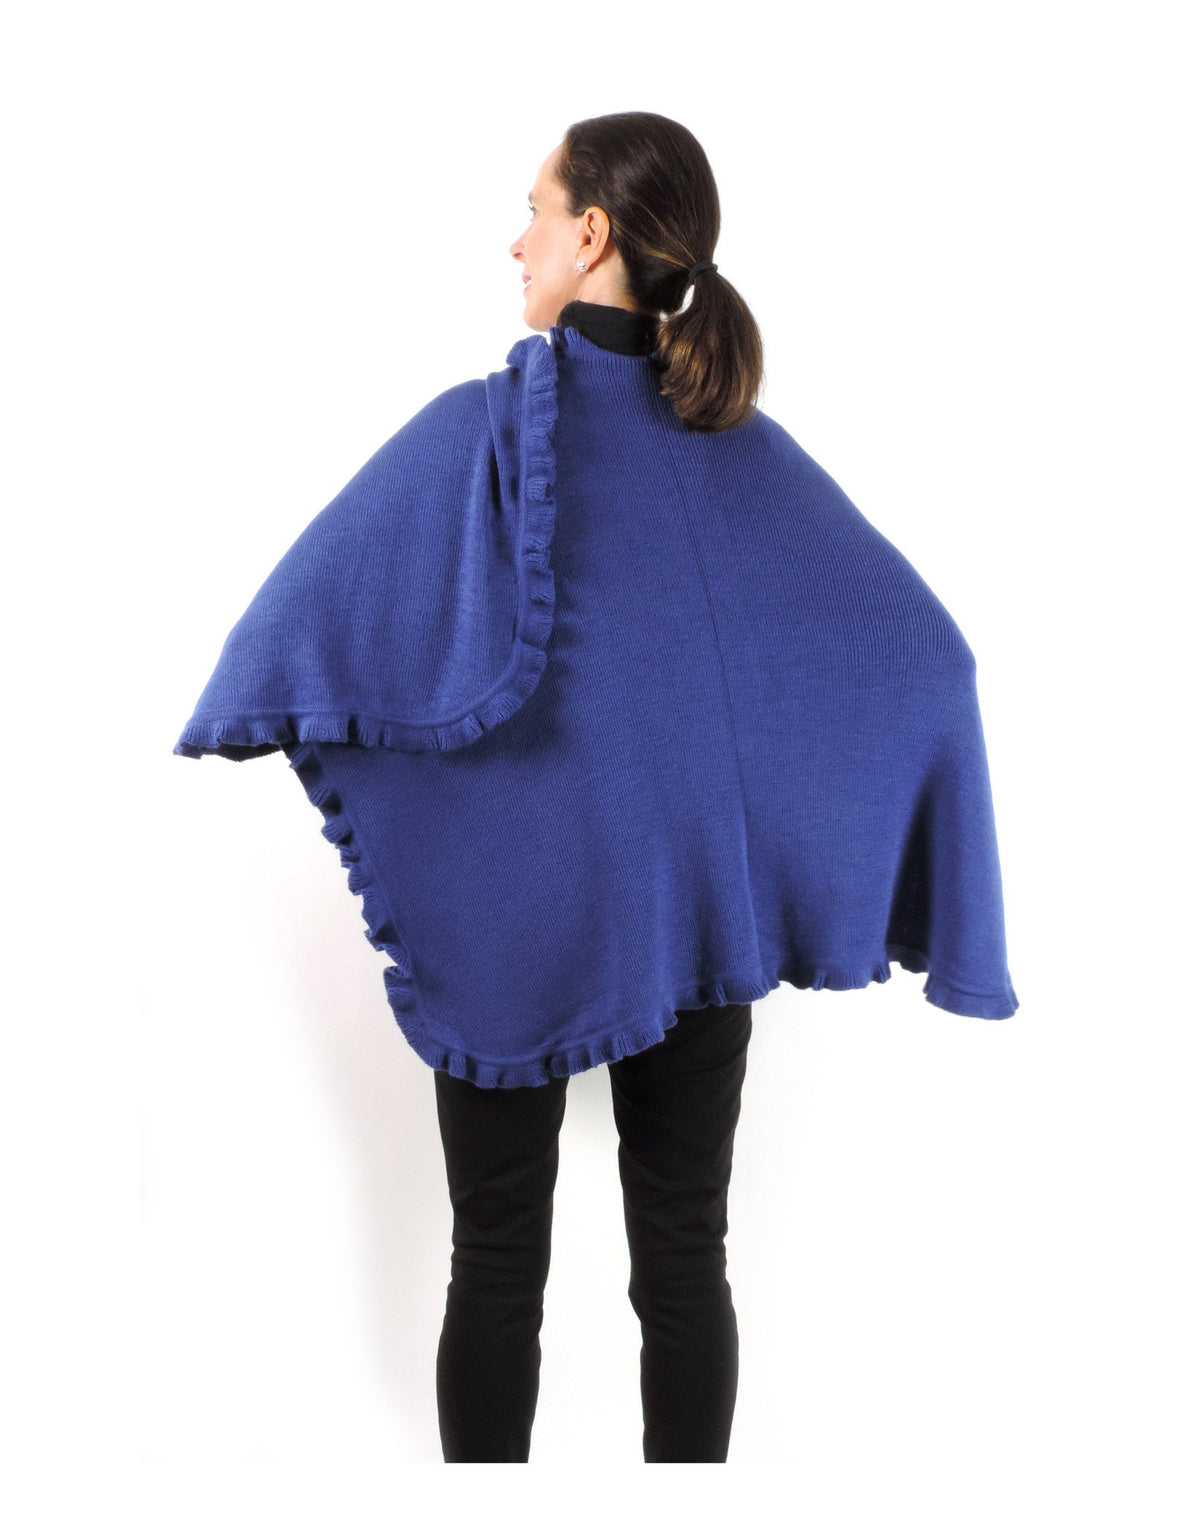 Baby Alpaca & Acrylic Wool Blend Knit Wrap with Ruffles - Blue - Qinti - The Peruvian Shop